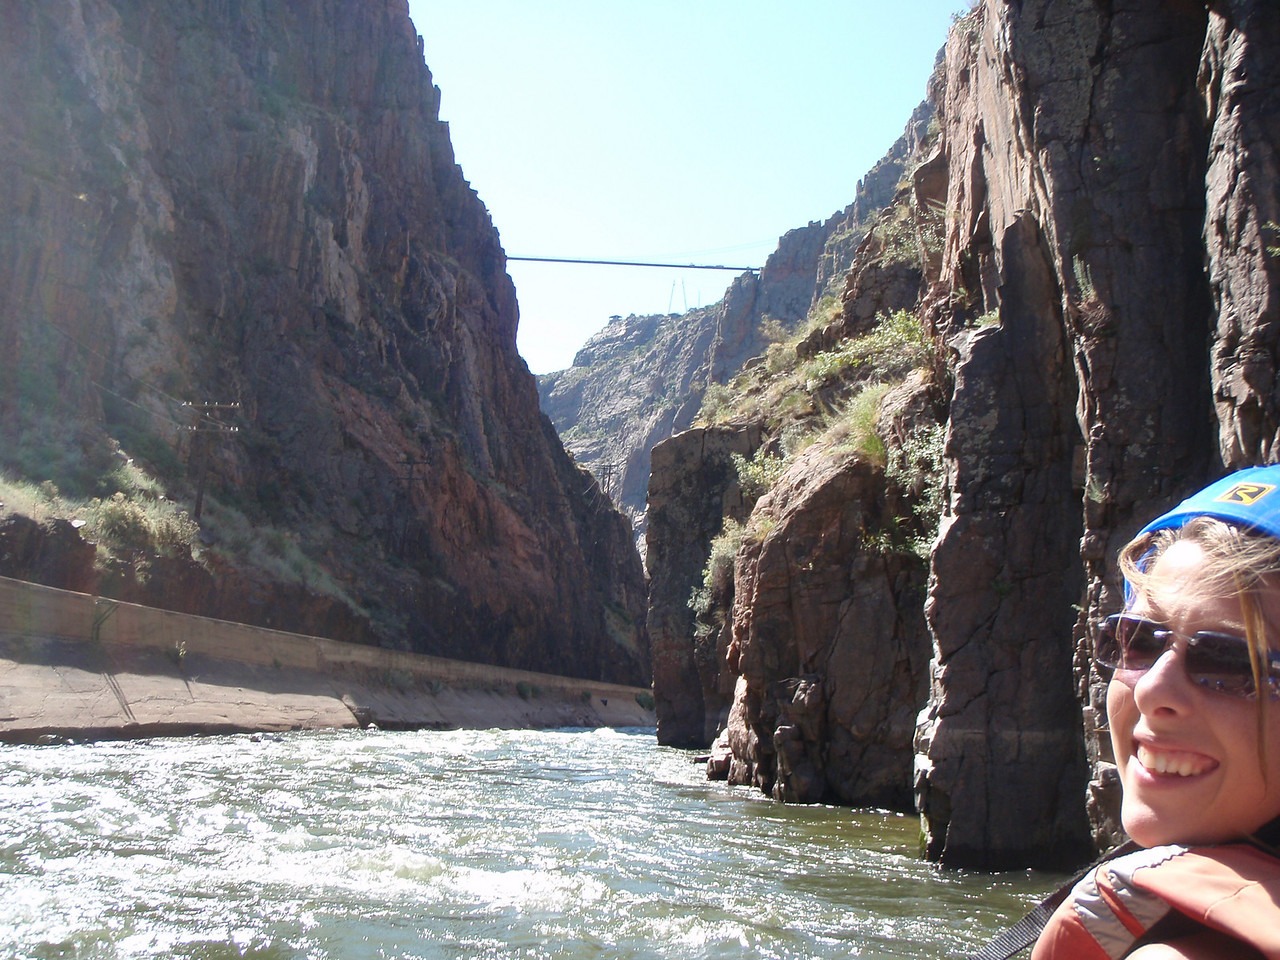 The Royal Gorge Bridge. It is the highest suspension bridge in the world at 1,053'.